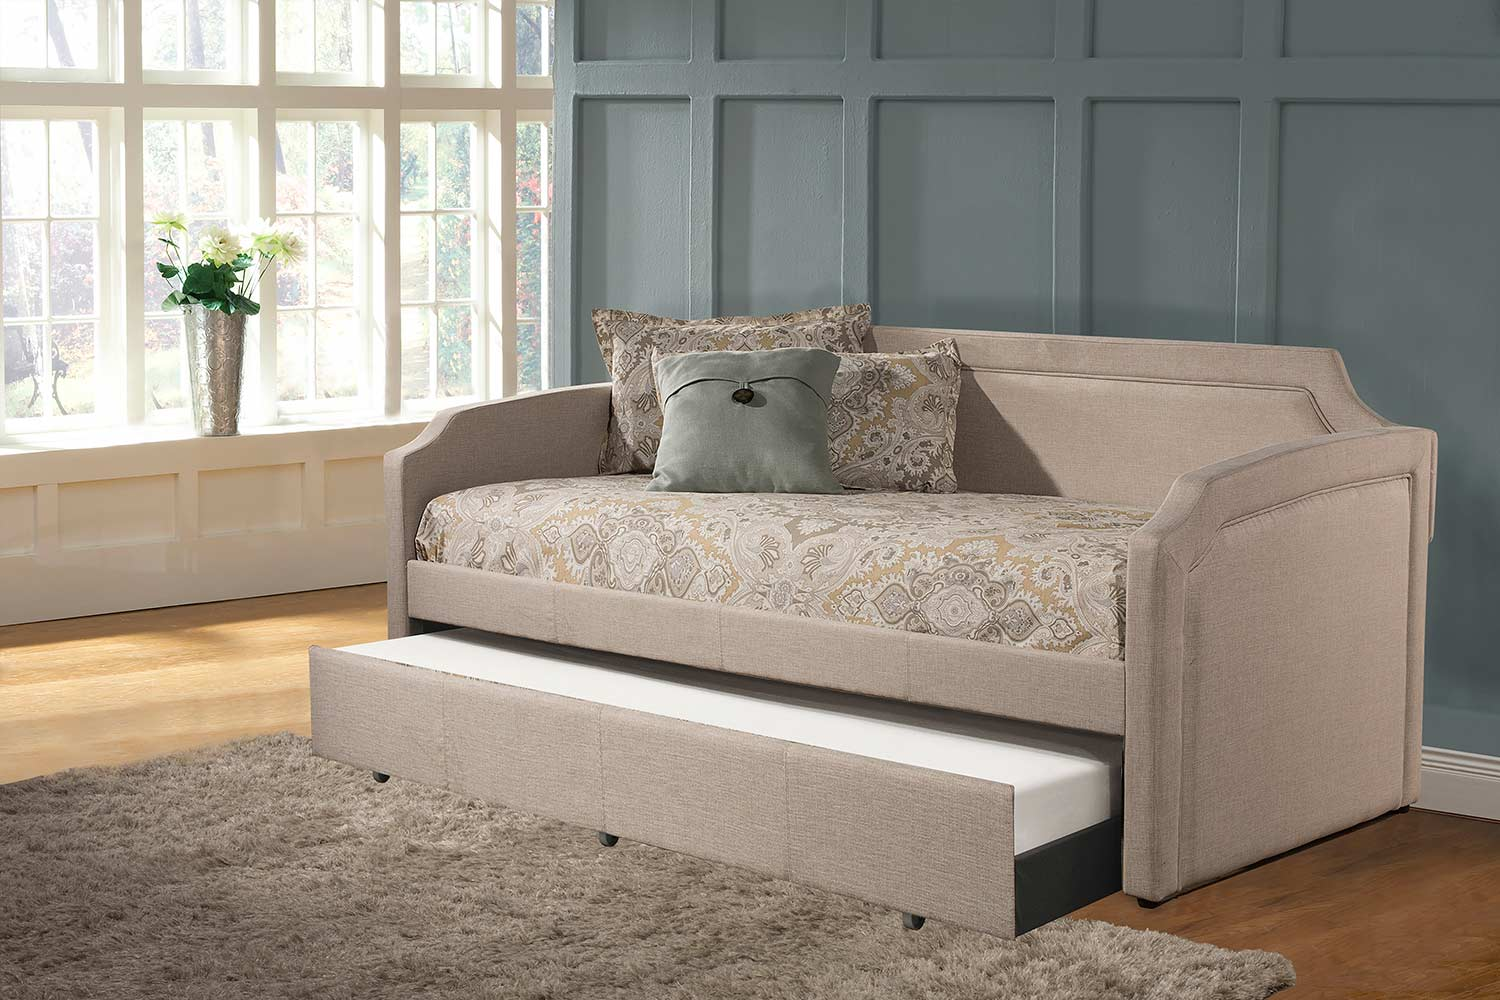 Hillsdale Paxton Daybed with Trundle - Cream